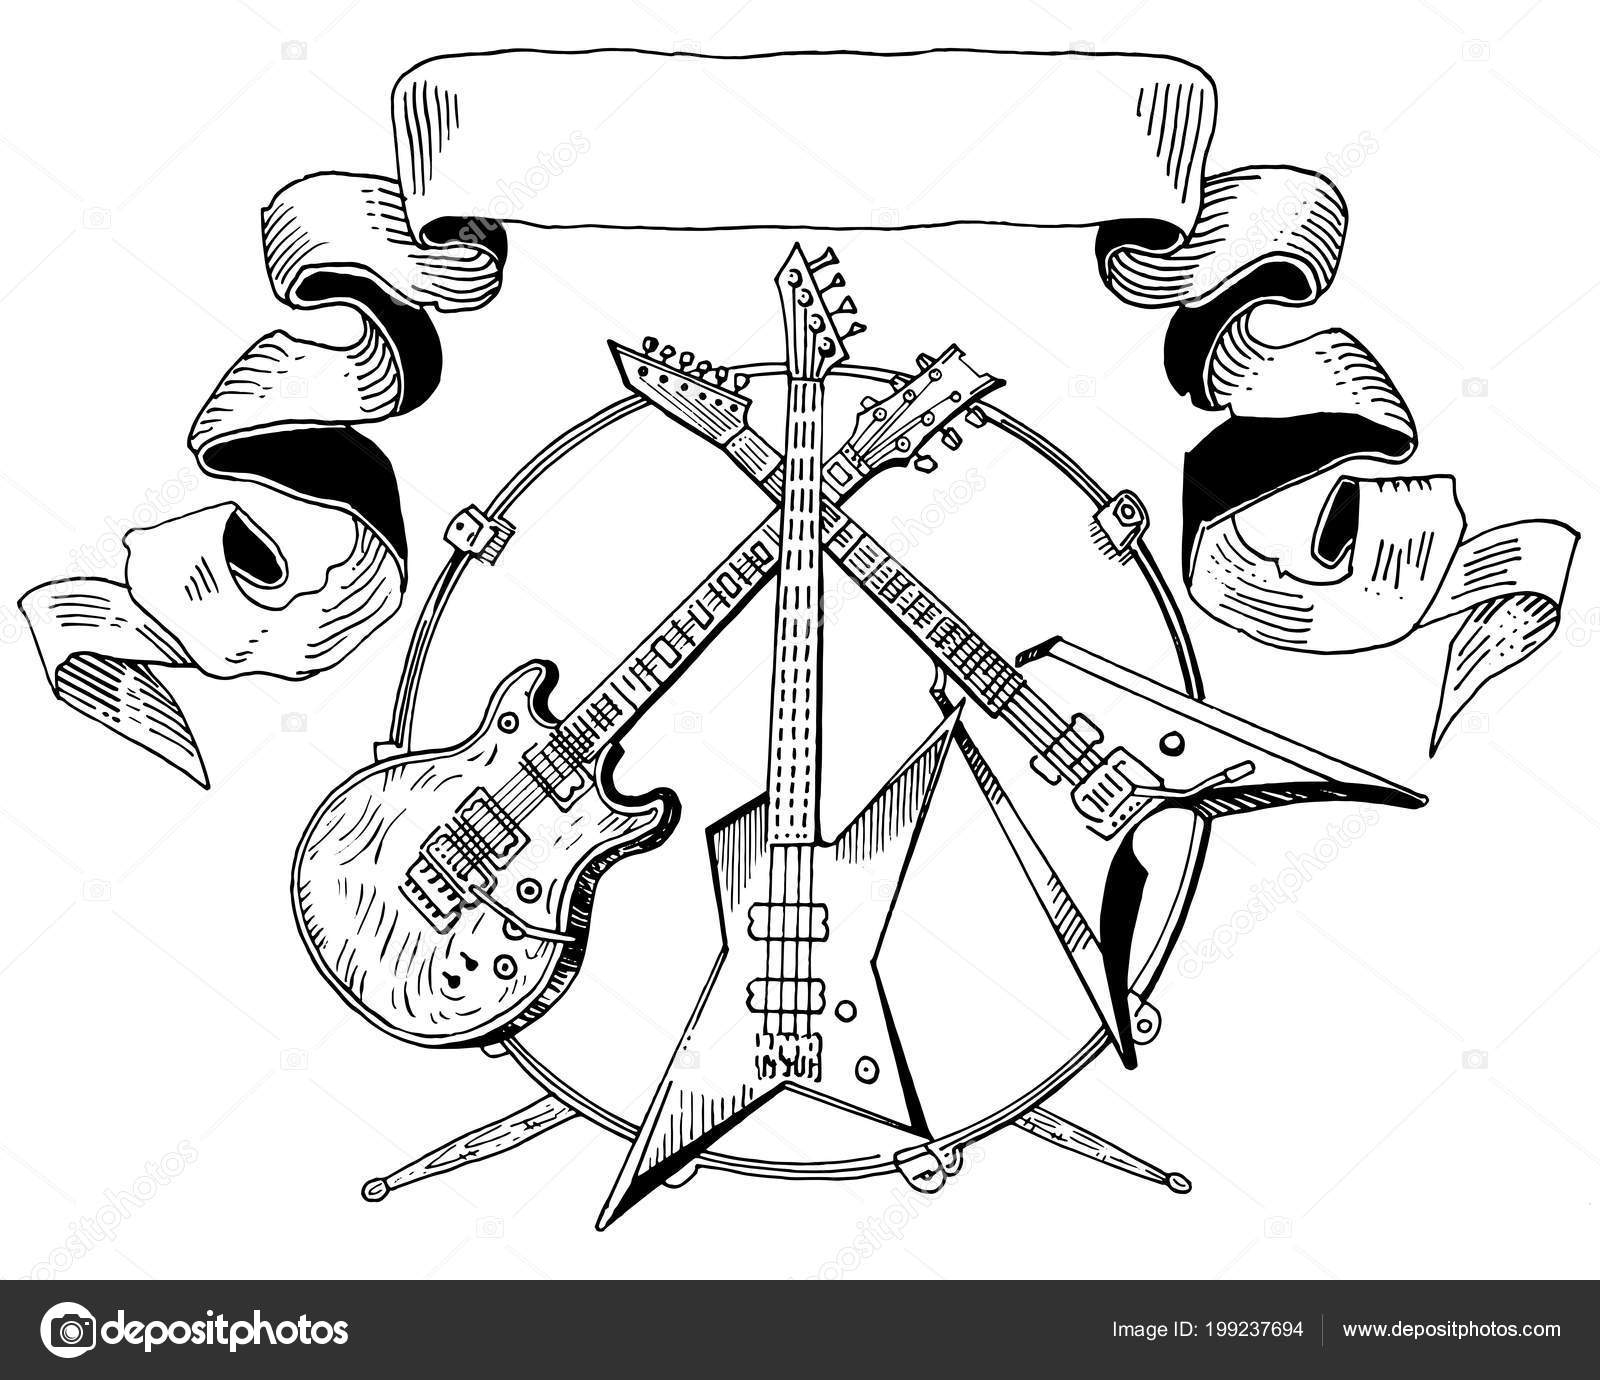 dorable bass guitar template illustration